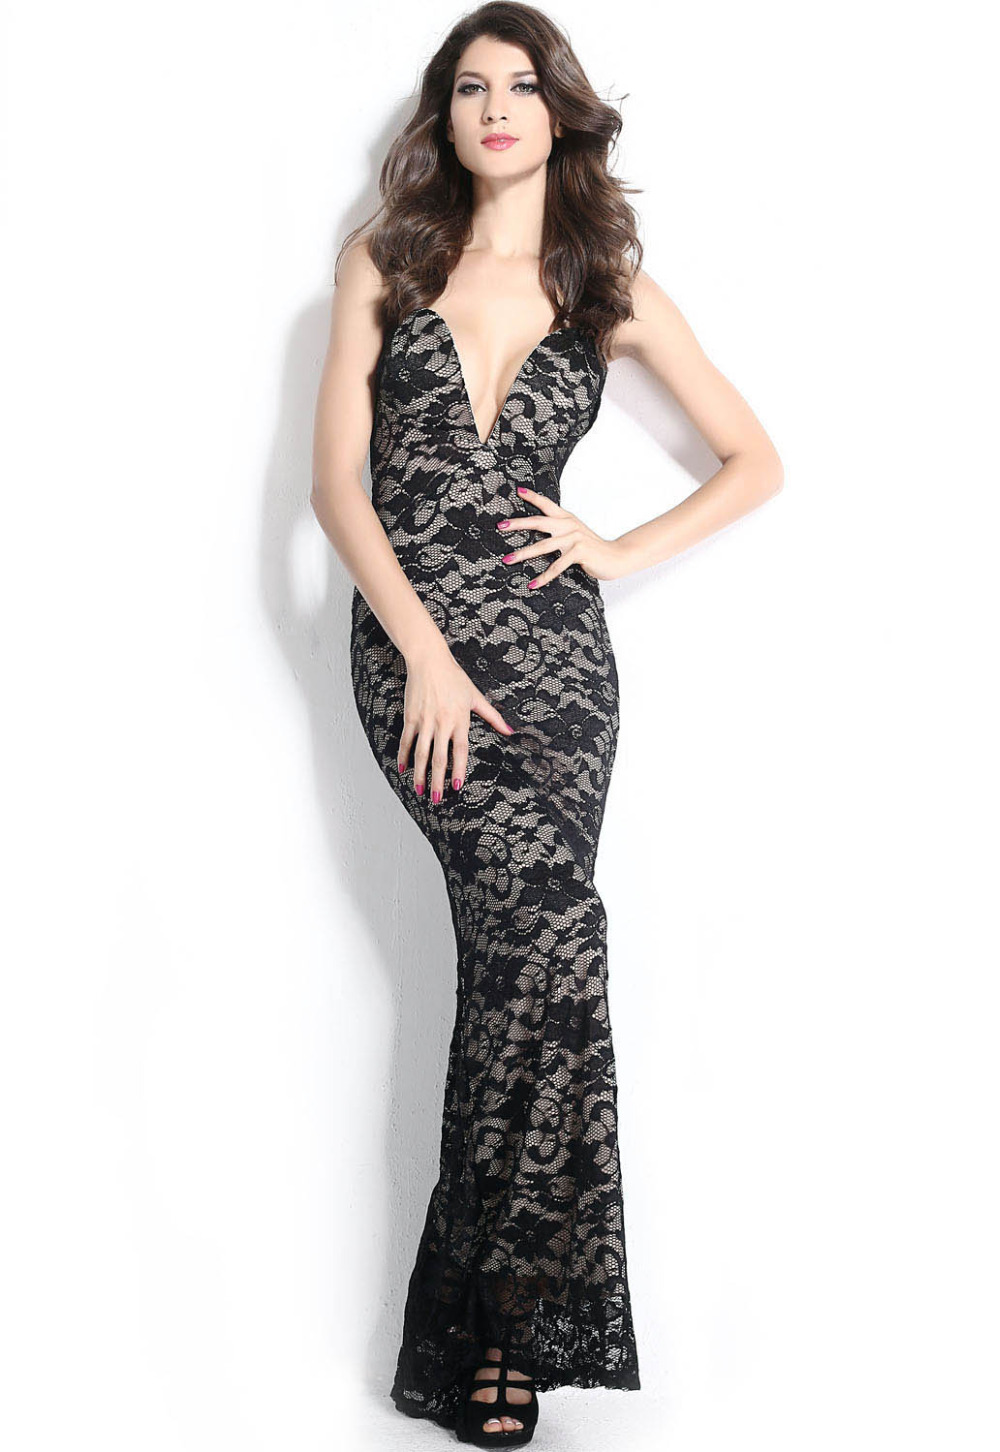 Woman Sexy Night Clubwear Cocktail Formal dress floor-length sheath <font><b>Black</b></font> <font><b>Lace</b></font> <font><b>Nude</b></font> <font><b>Illusion</b></font> <font><b>Plunging</b></font> <font><b>V</b></font> <font><b>Neck</b></font> Strapless Gown 6328